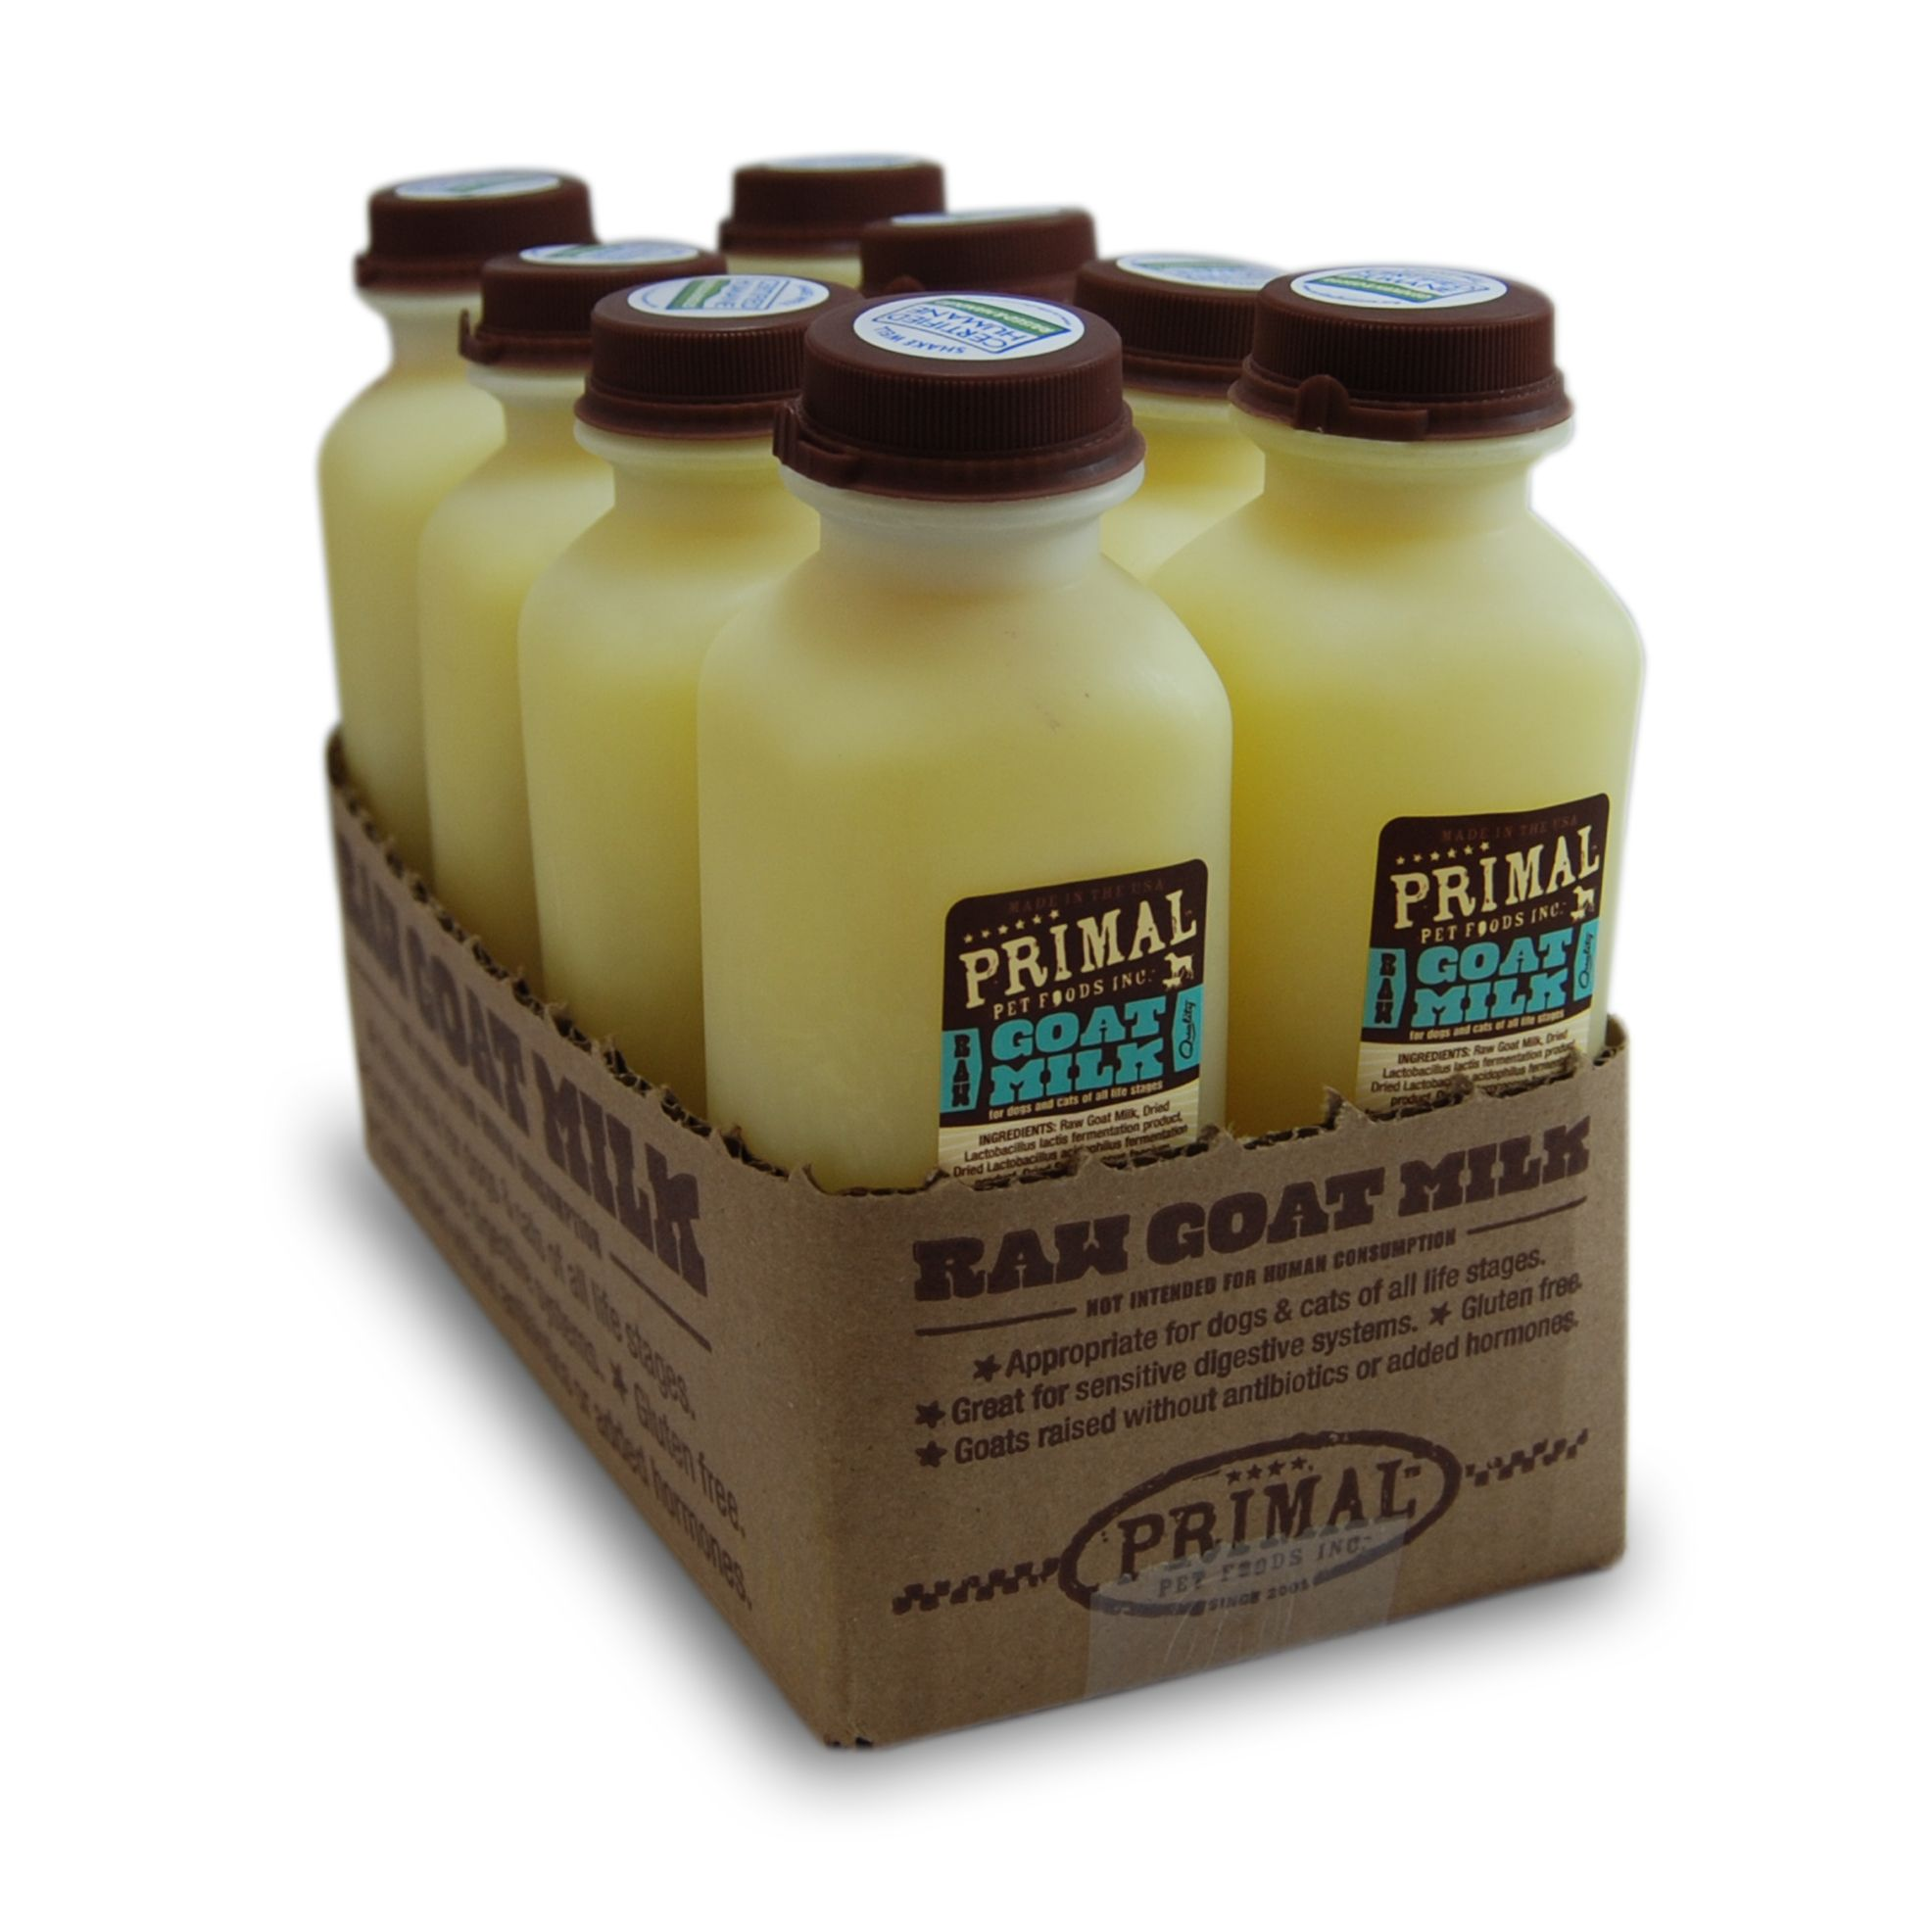 It's 5 o'clock somewhere! Cheers to good health with PRIMAL Raw Goat Milk. Click to learn about the benefits!